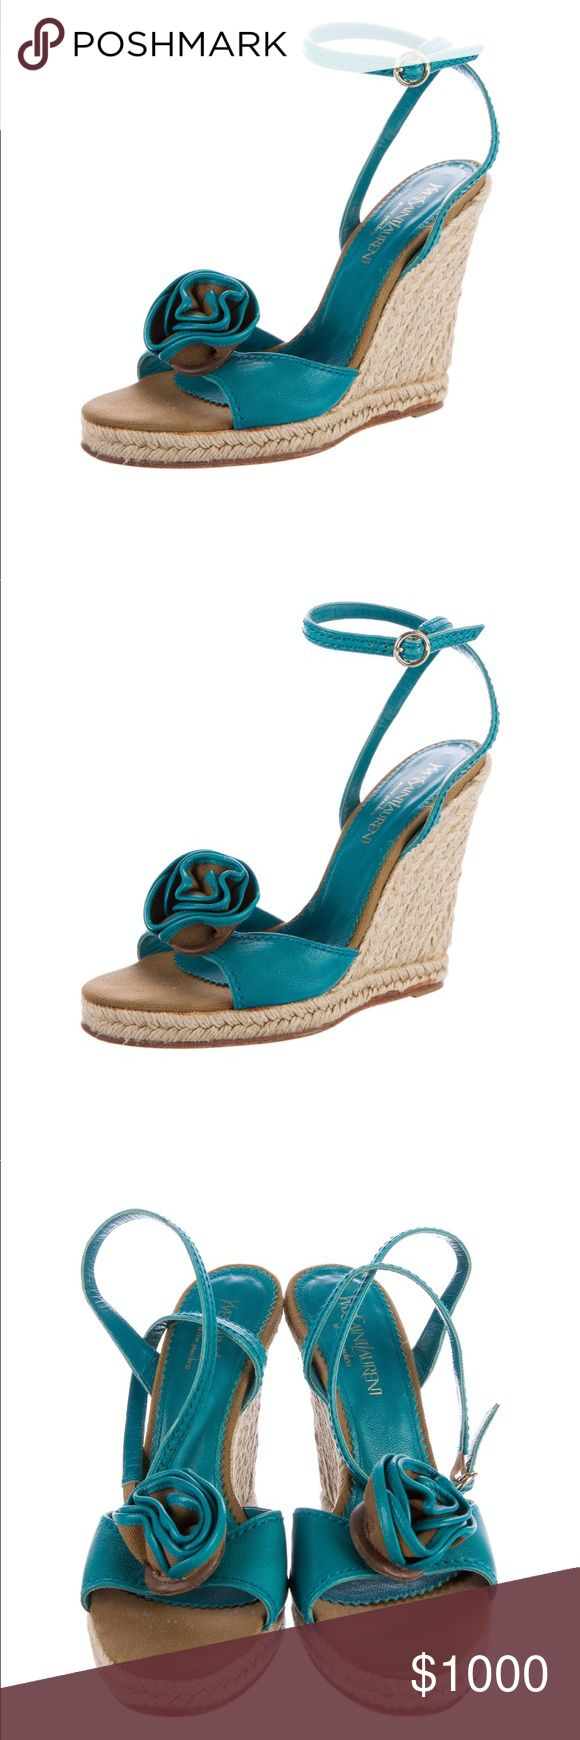 🆕YSL Teal Wedge Espadrilles Teal leather Yves Saint Laurent espadrille wedge sandals with rosette adornments at tops, tonal stitching, jute covered heels and buckle closures at ankles.   Please like this listing to be notified when available! Yves Saint Laurent Shoes Espadrilles